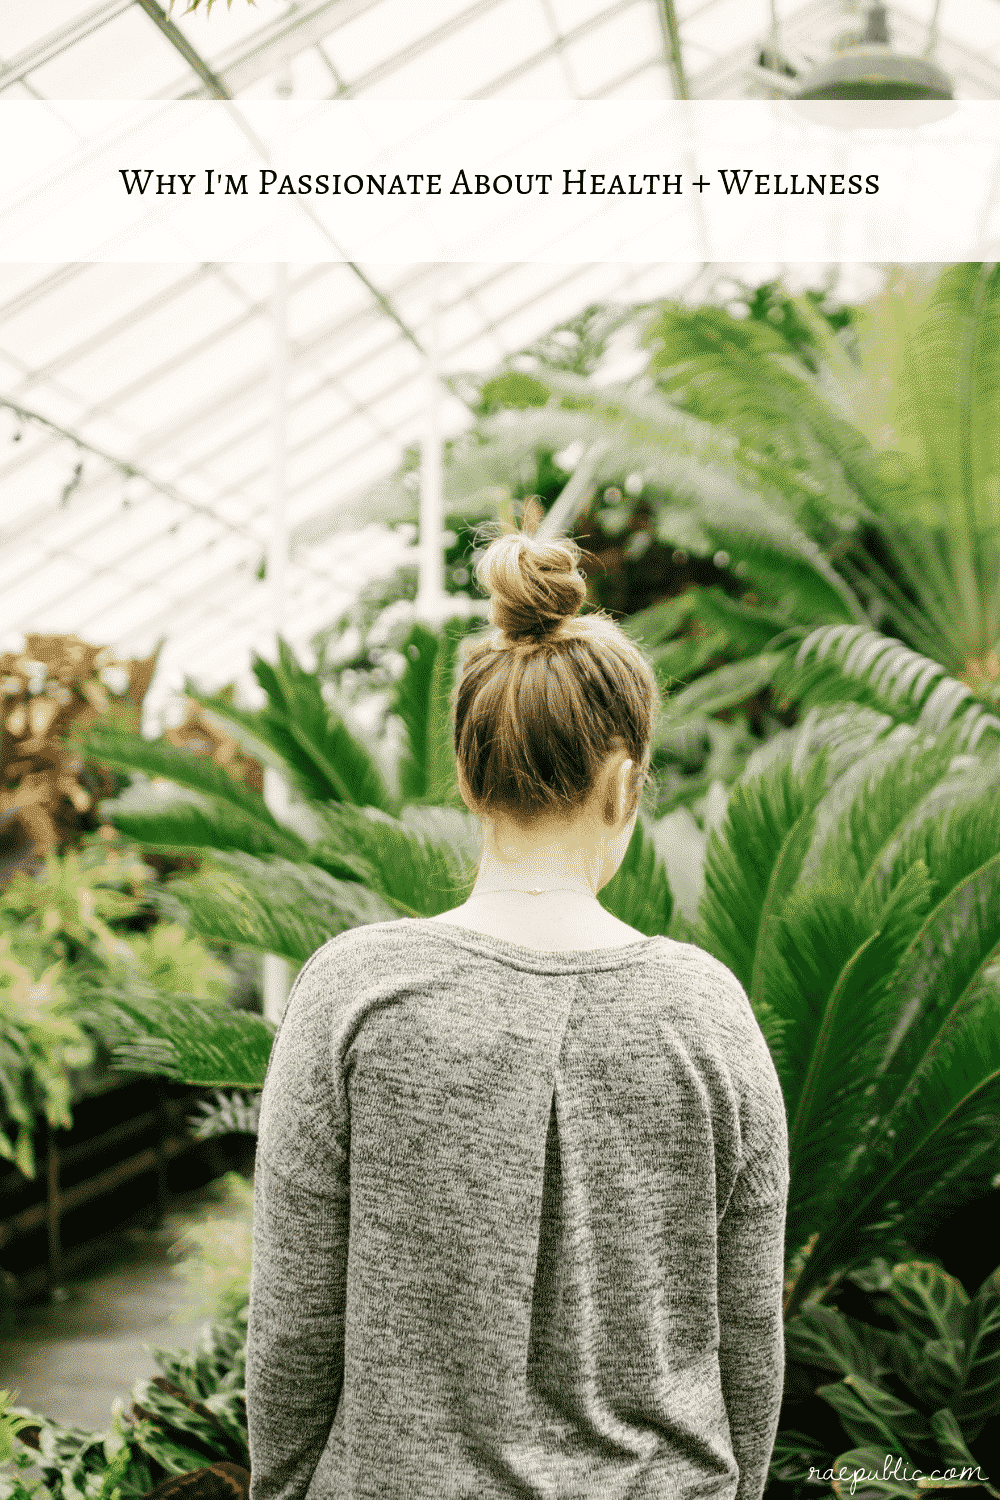 Why I'm Passionate About Health + Wellness